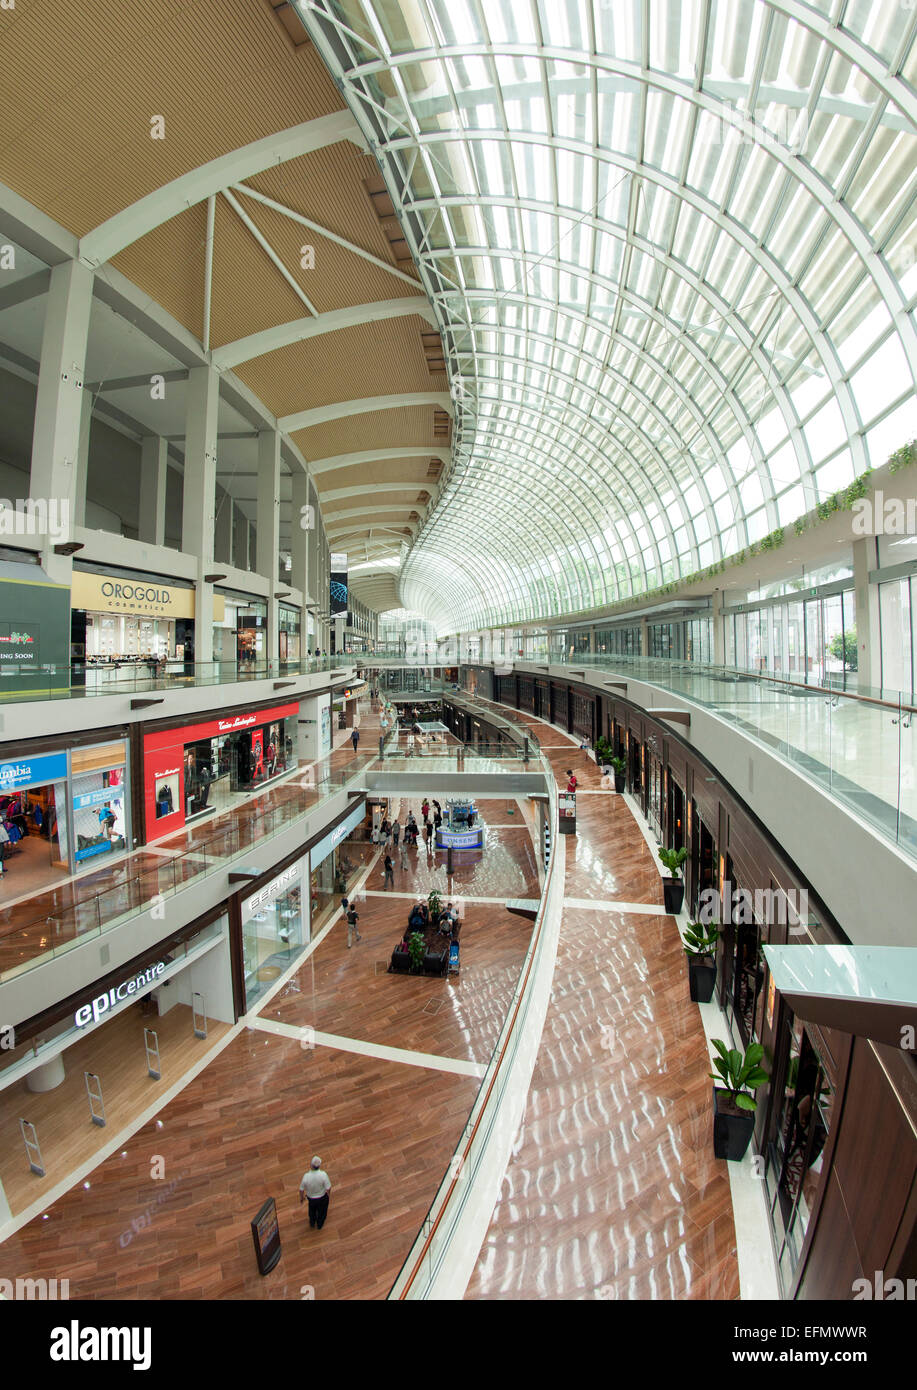 Interior of The Shoppes, a shopping mall attached to the Marina Bay Sands Hotel in Singapore. - Stock Image